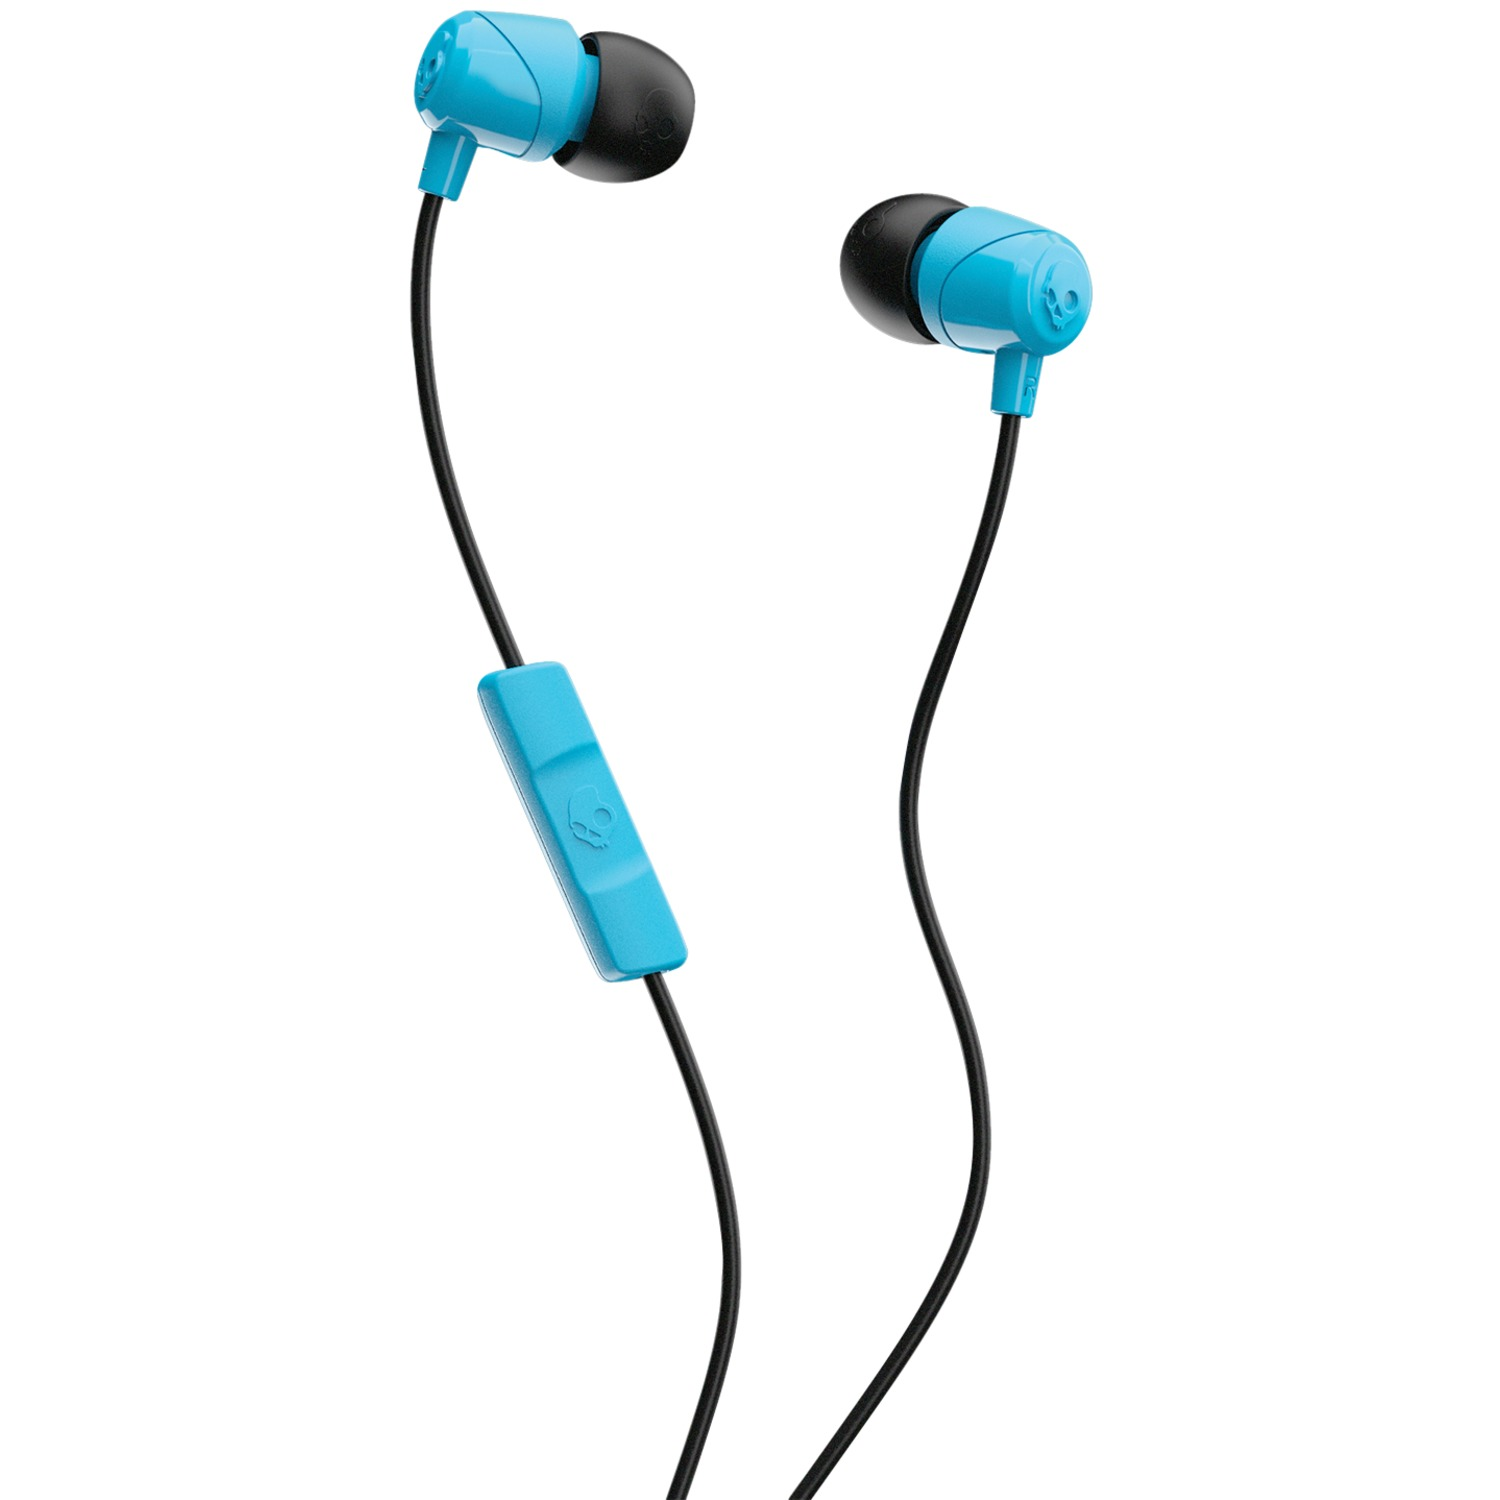 Skullcandy S2duyk 628 Jib In Ear Earbuds With Microphone Blue Walmart Com Walmart Com